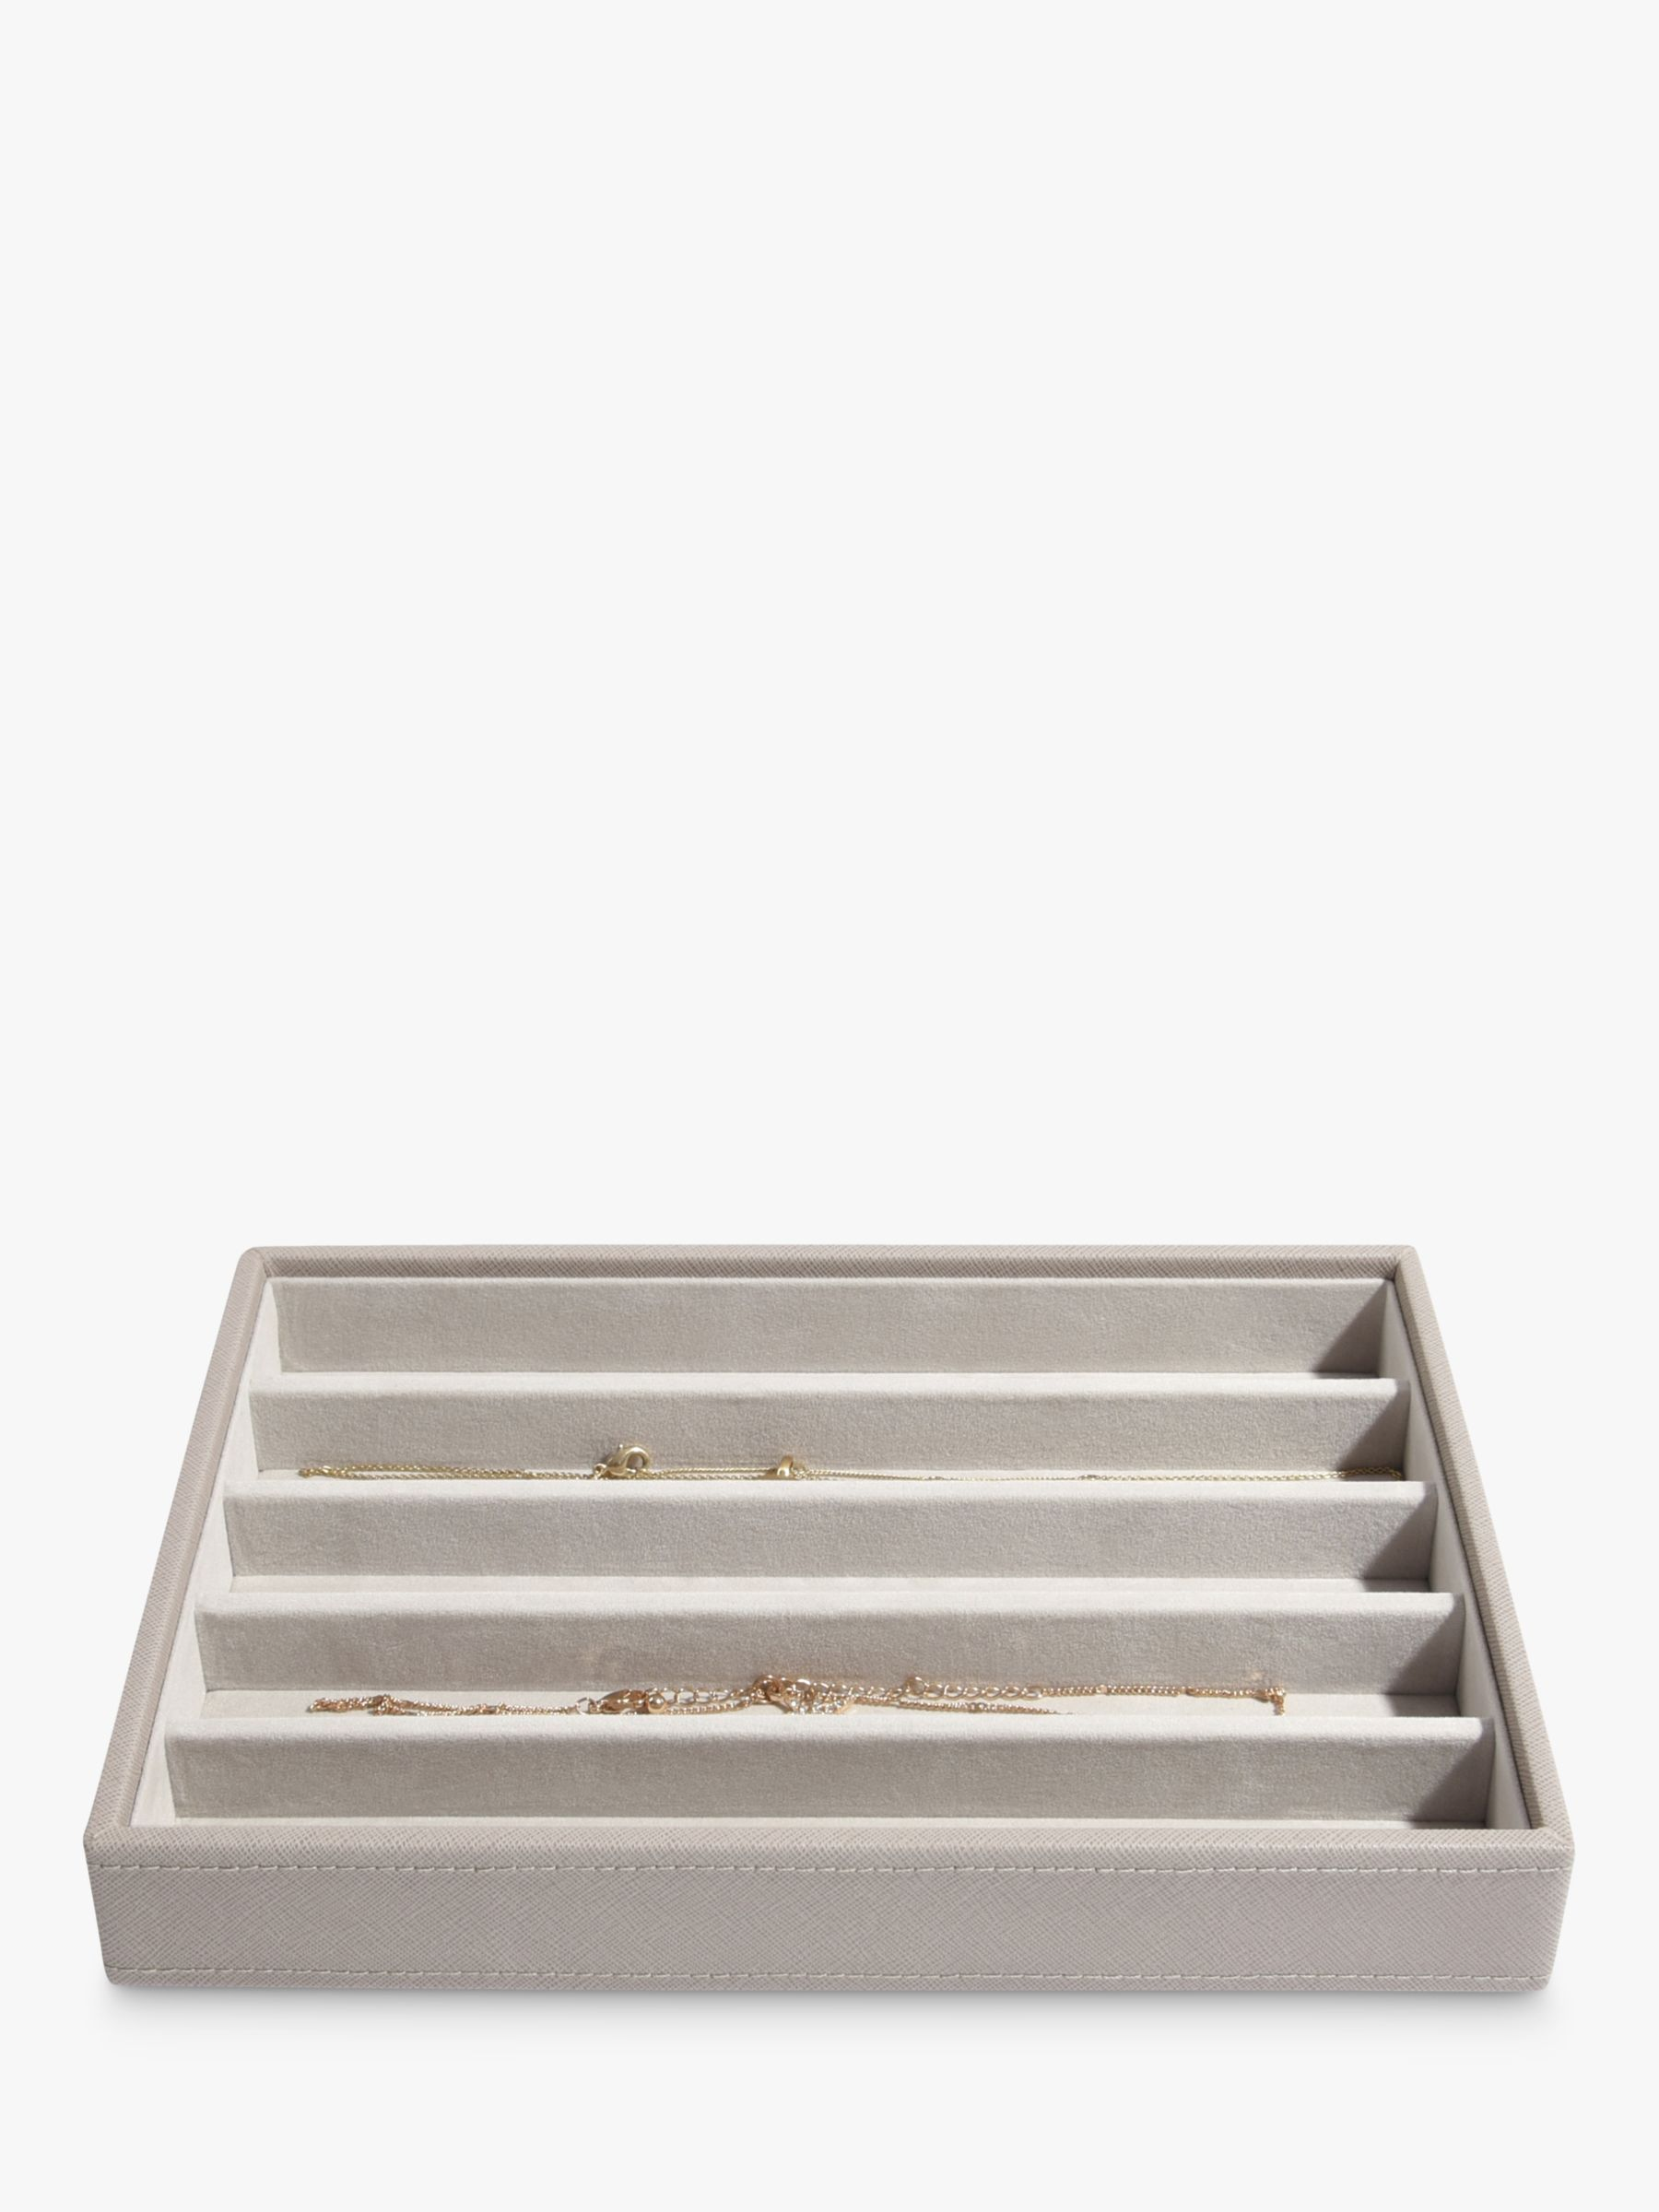 Stackers Stackers Classic 5 Section Jewellery Box